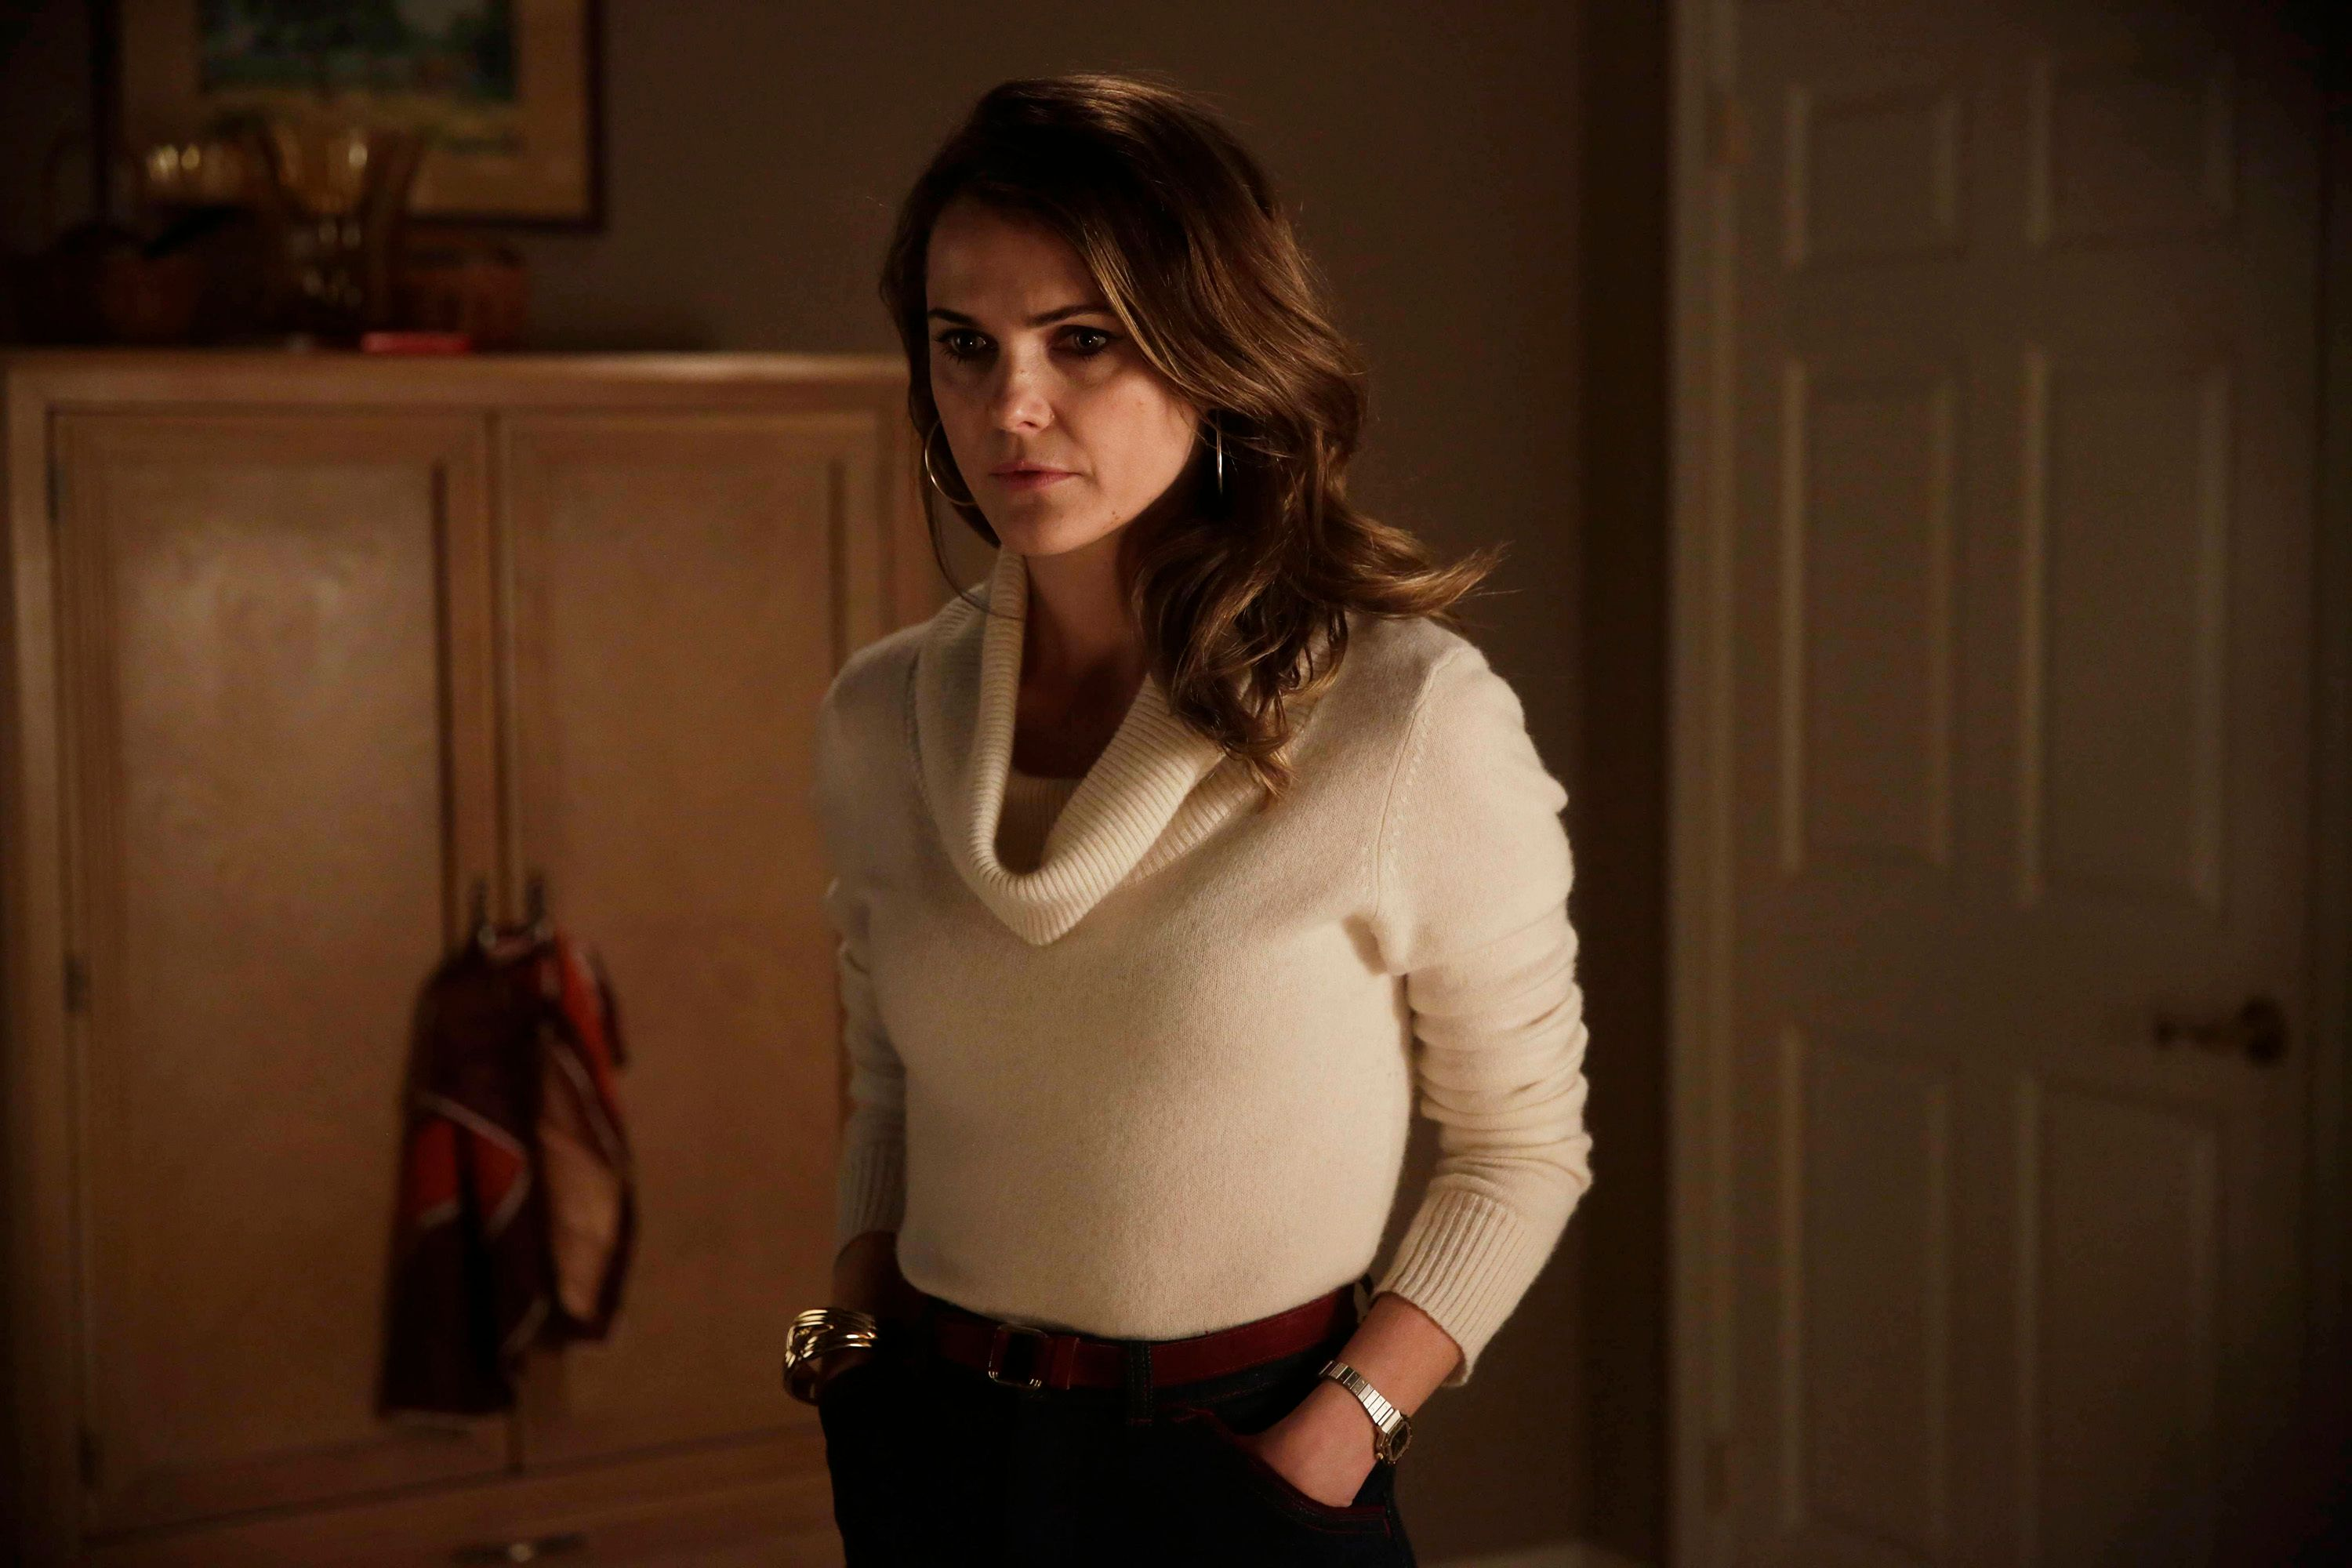 Keri Russell The Americans Star Keri Russell Talks Female Roles In Tv Collider